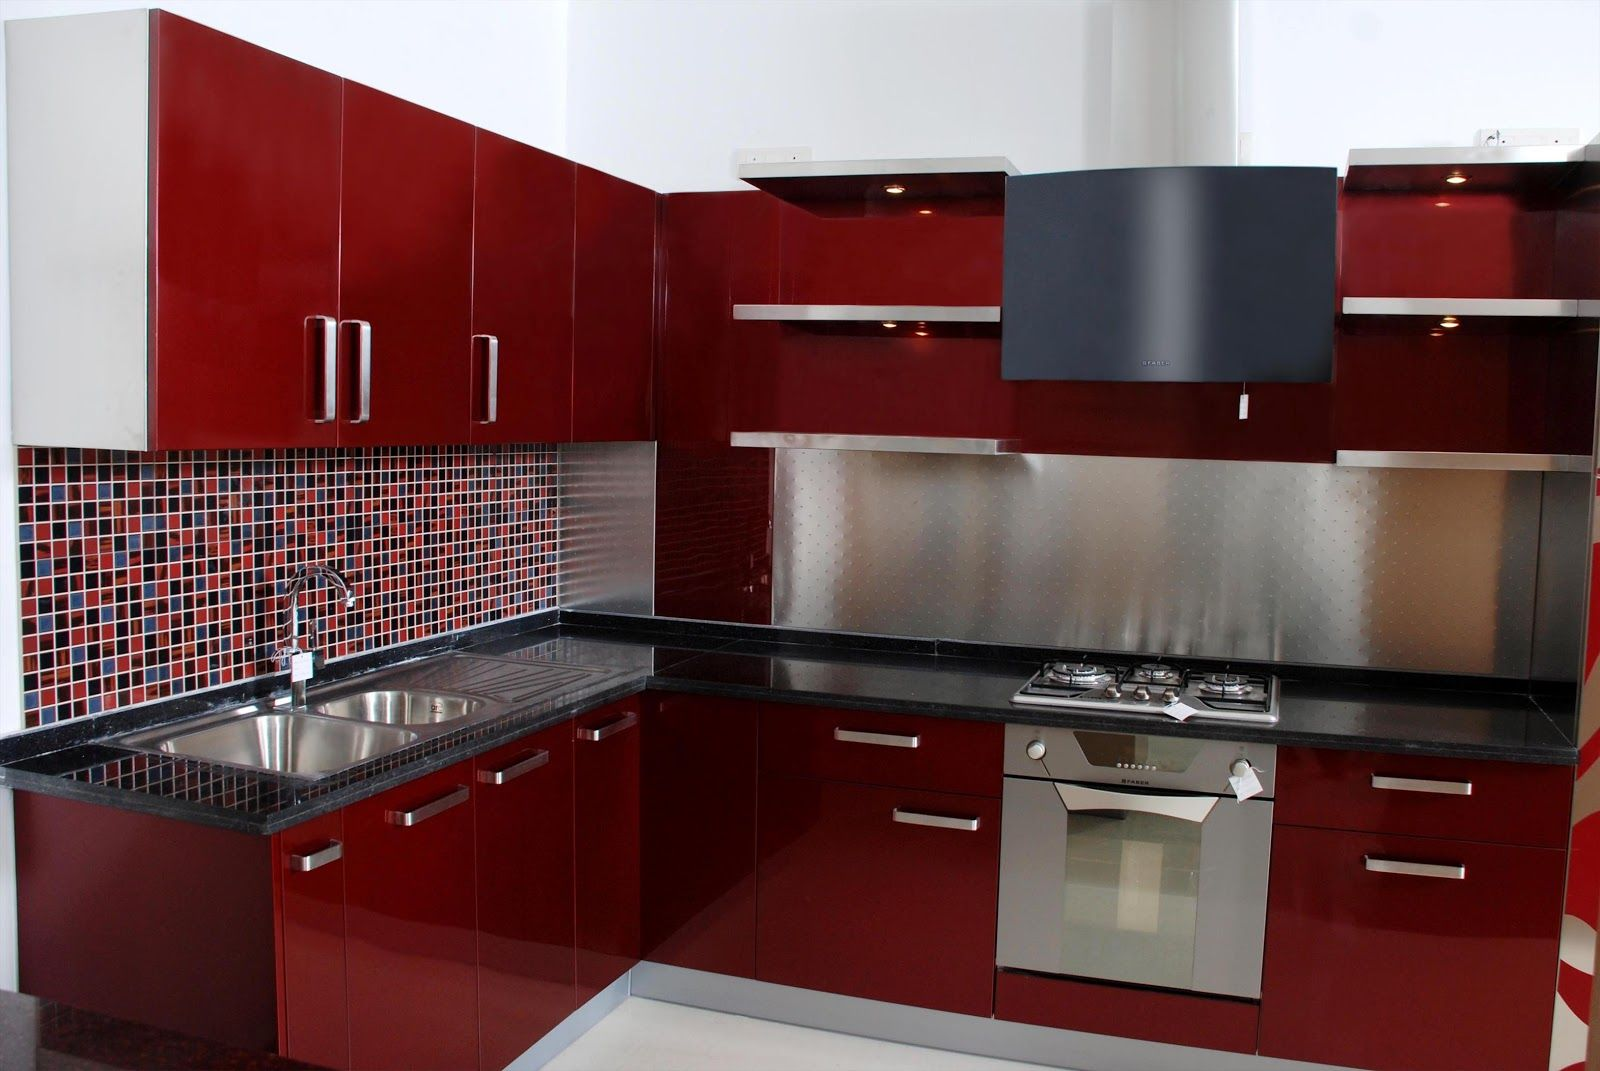 Parallel kitchen design india google search kitchen for Kitchen interior design styles